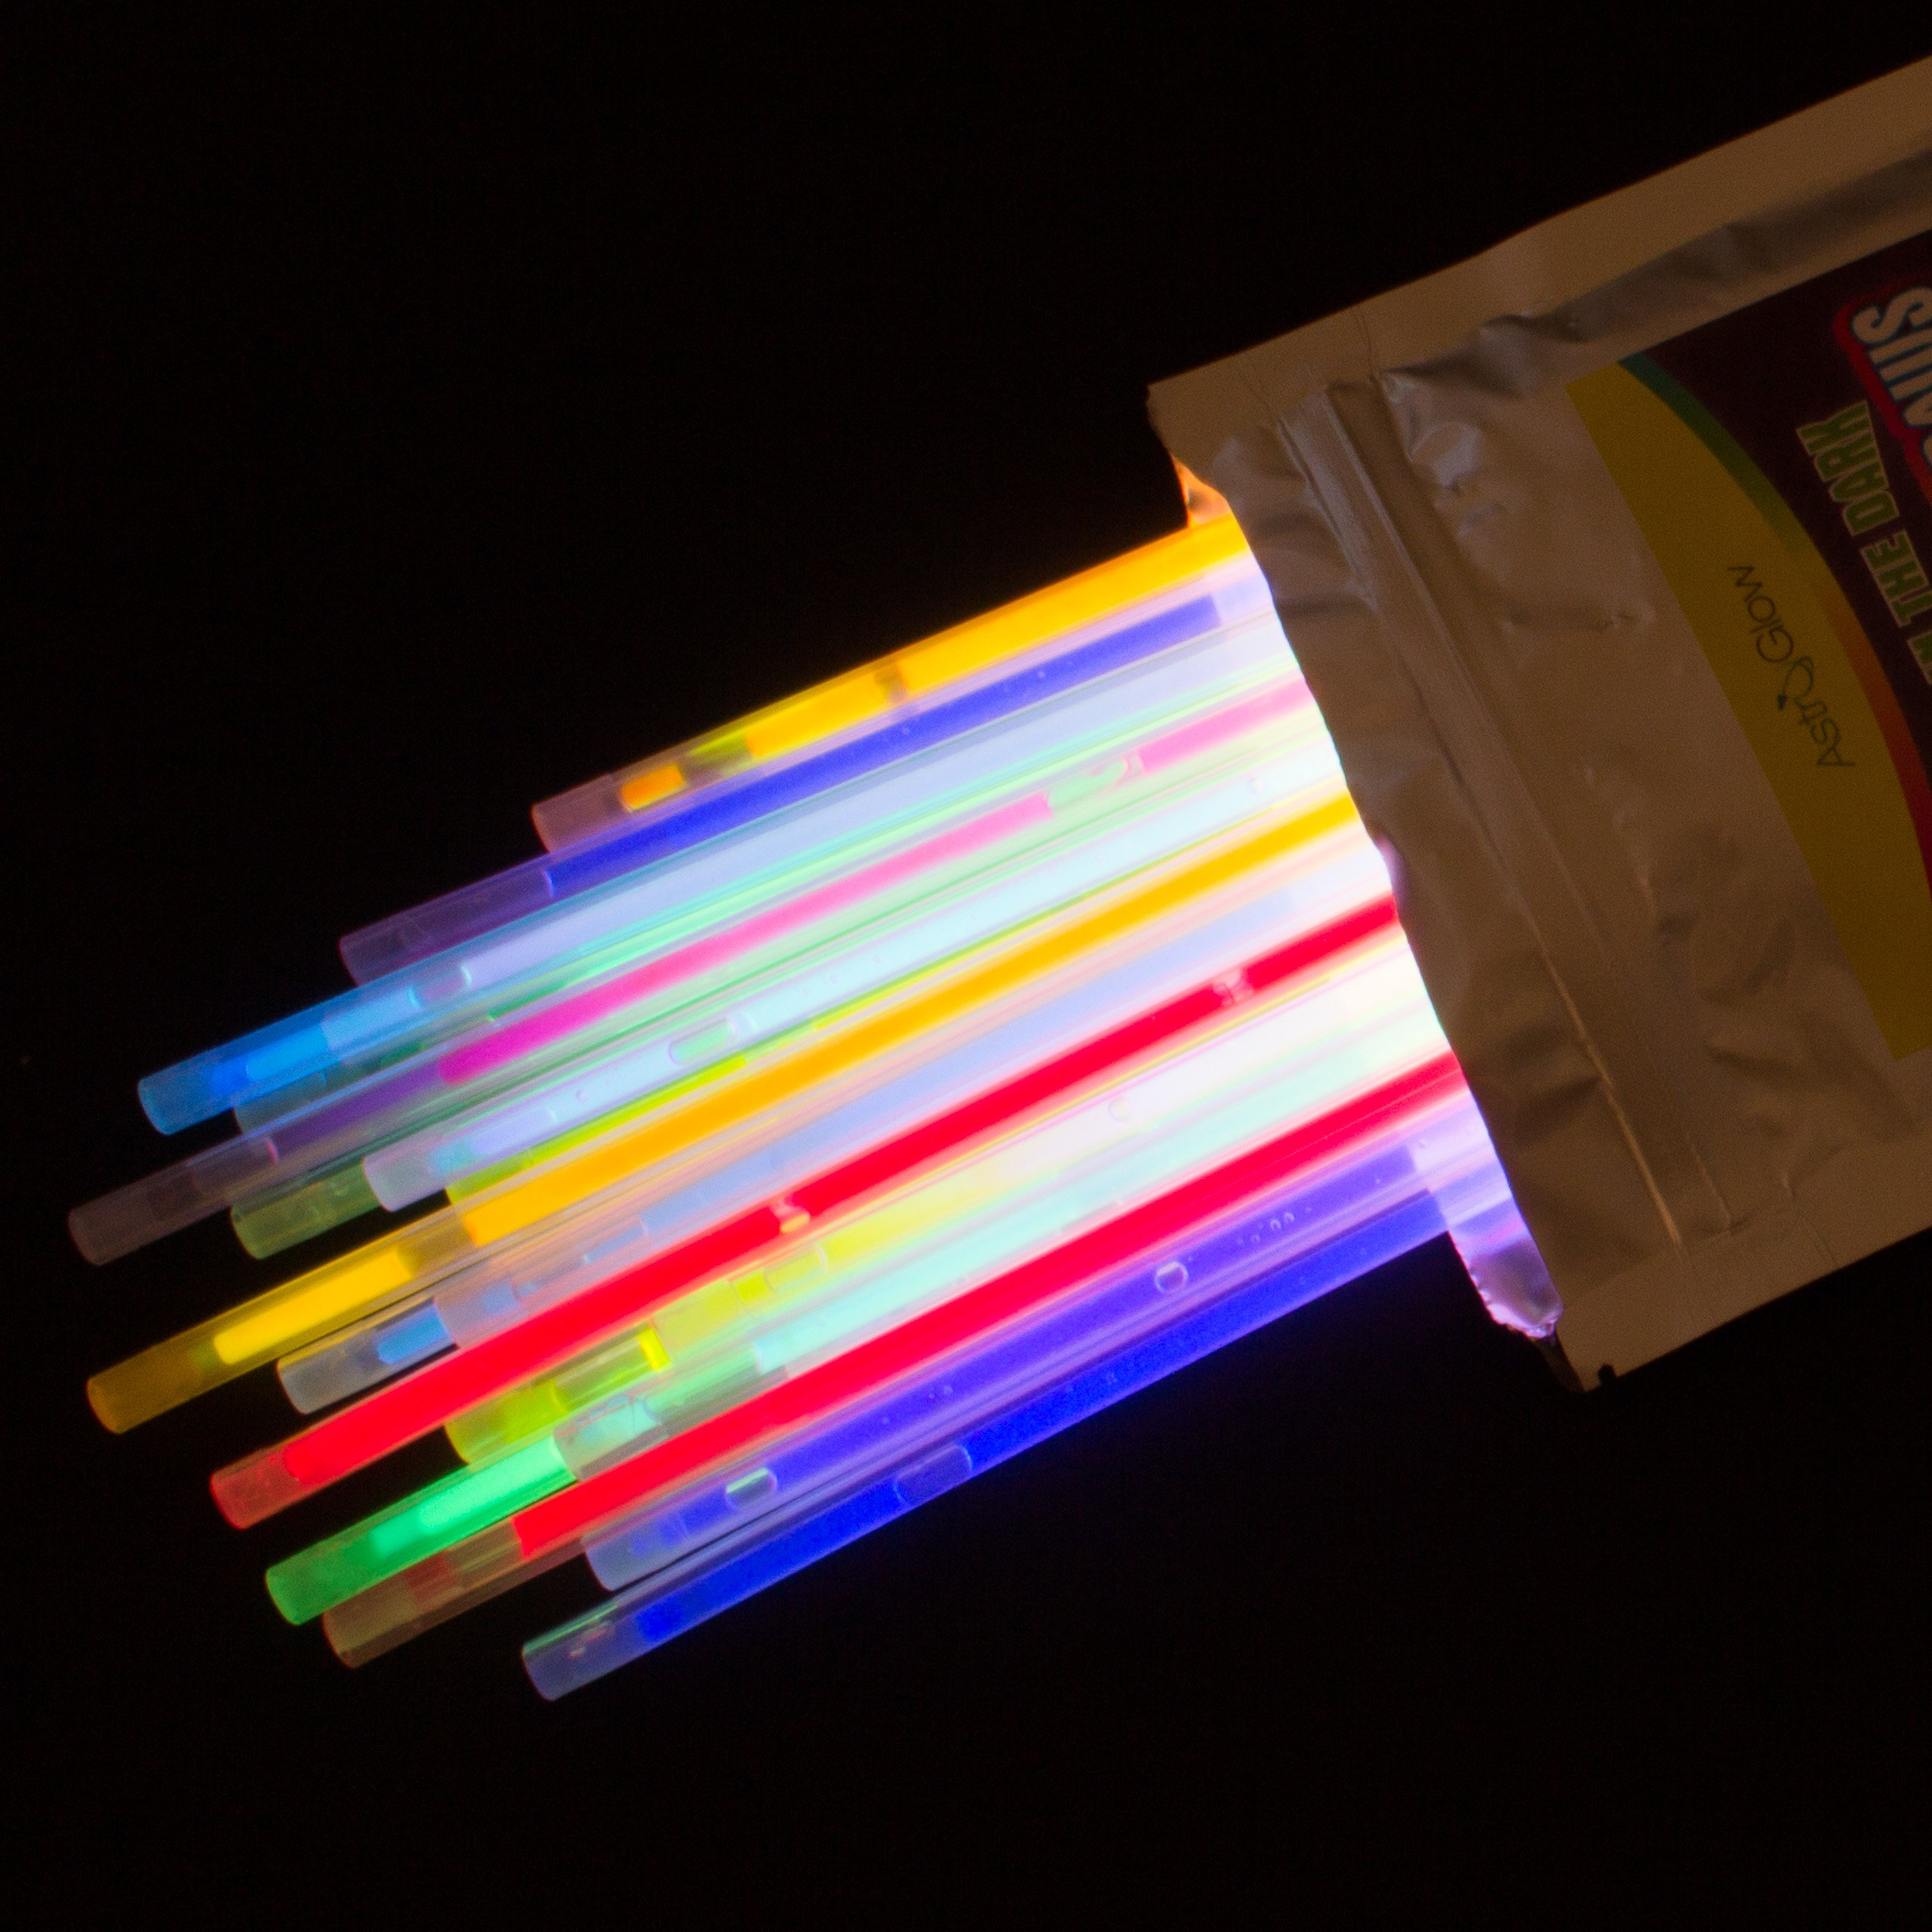 Astro Glow - Glow In The Dark Drinking Straws - 25 Pack - 9 Bright Assorted Colors - Glows up to 8 hours - Guaranteed Satisfaction - Perfect Glow Straws For Any Party by Astro Glow